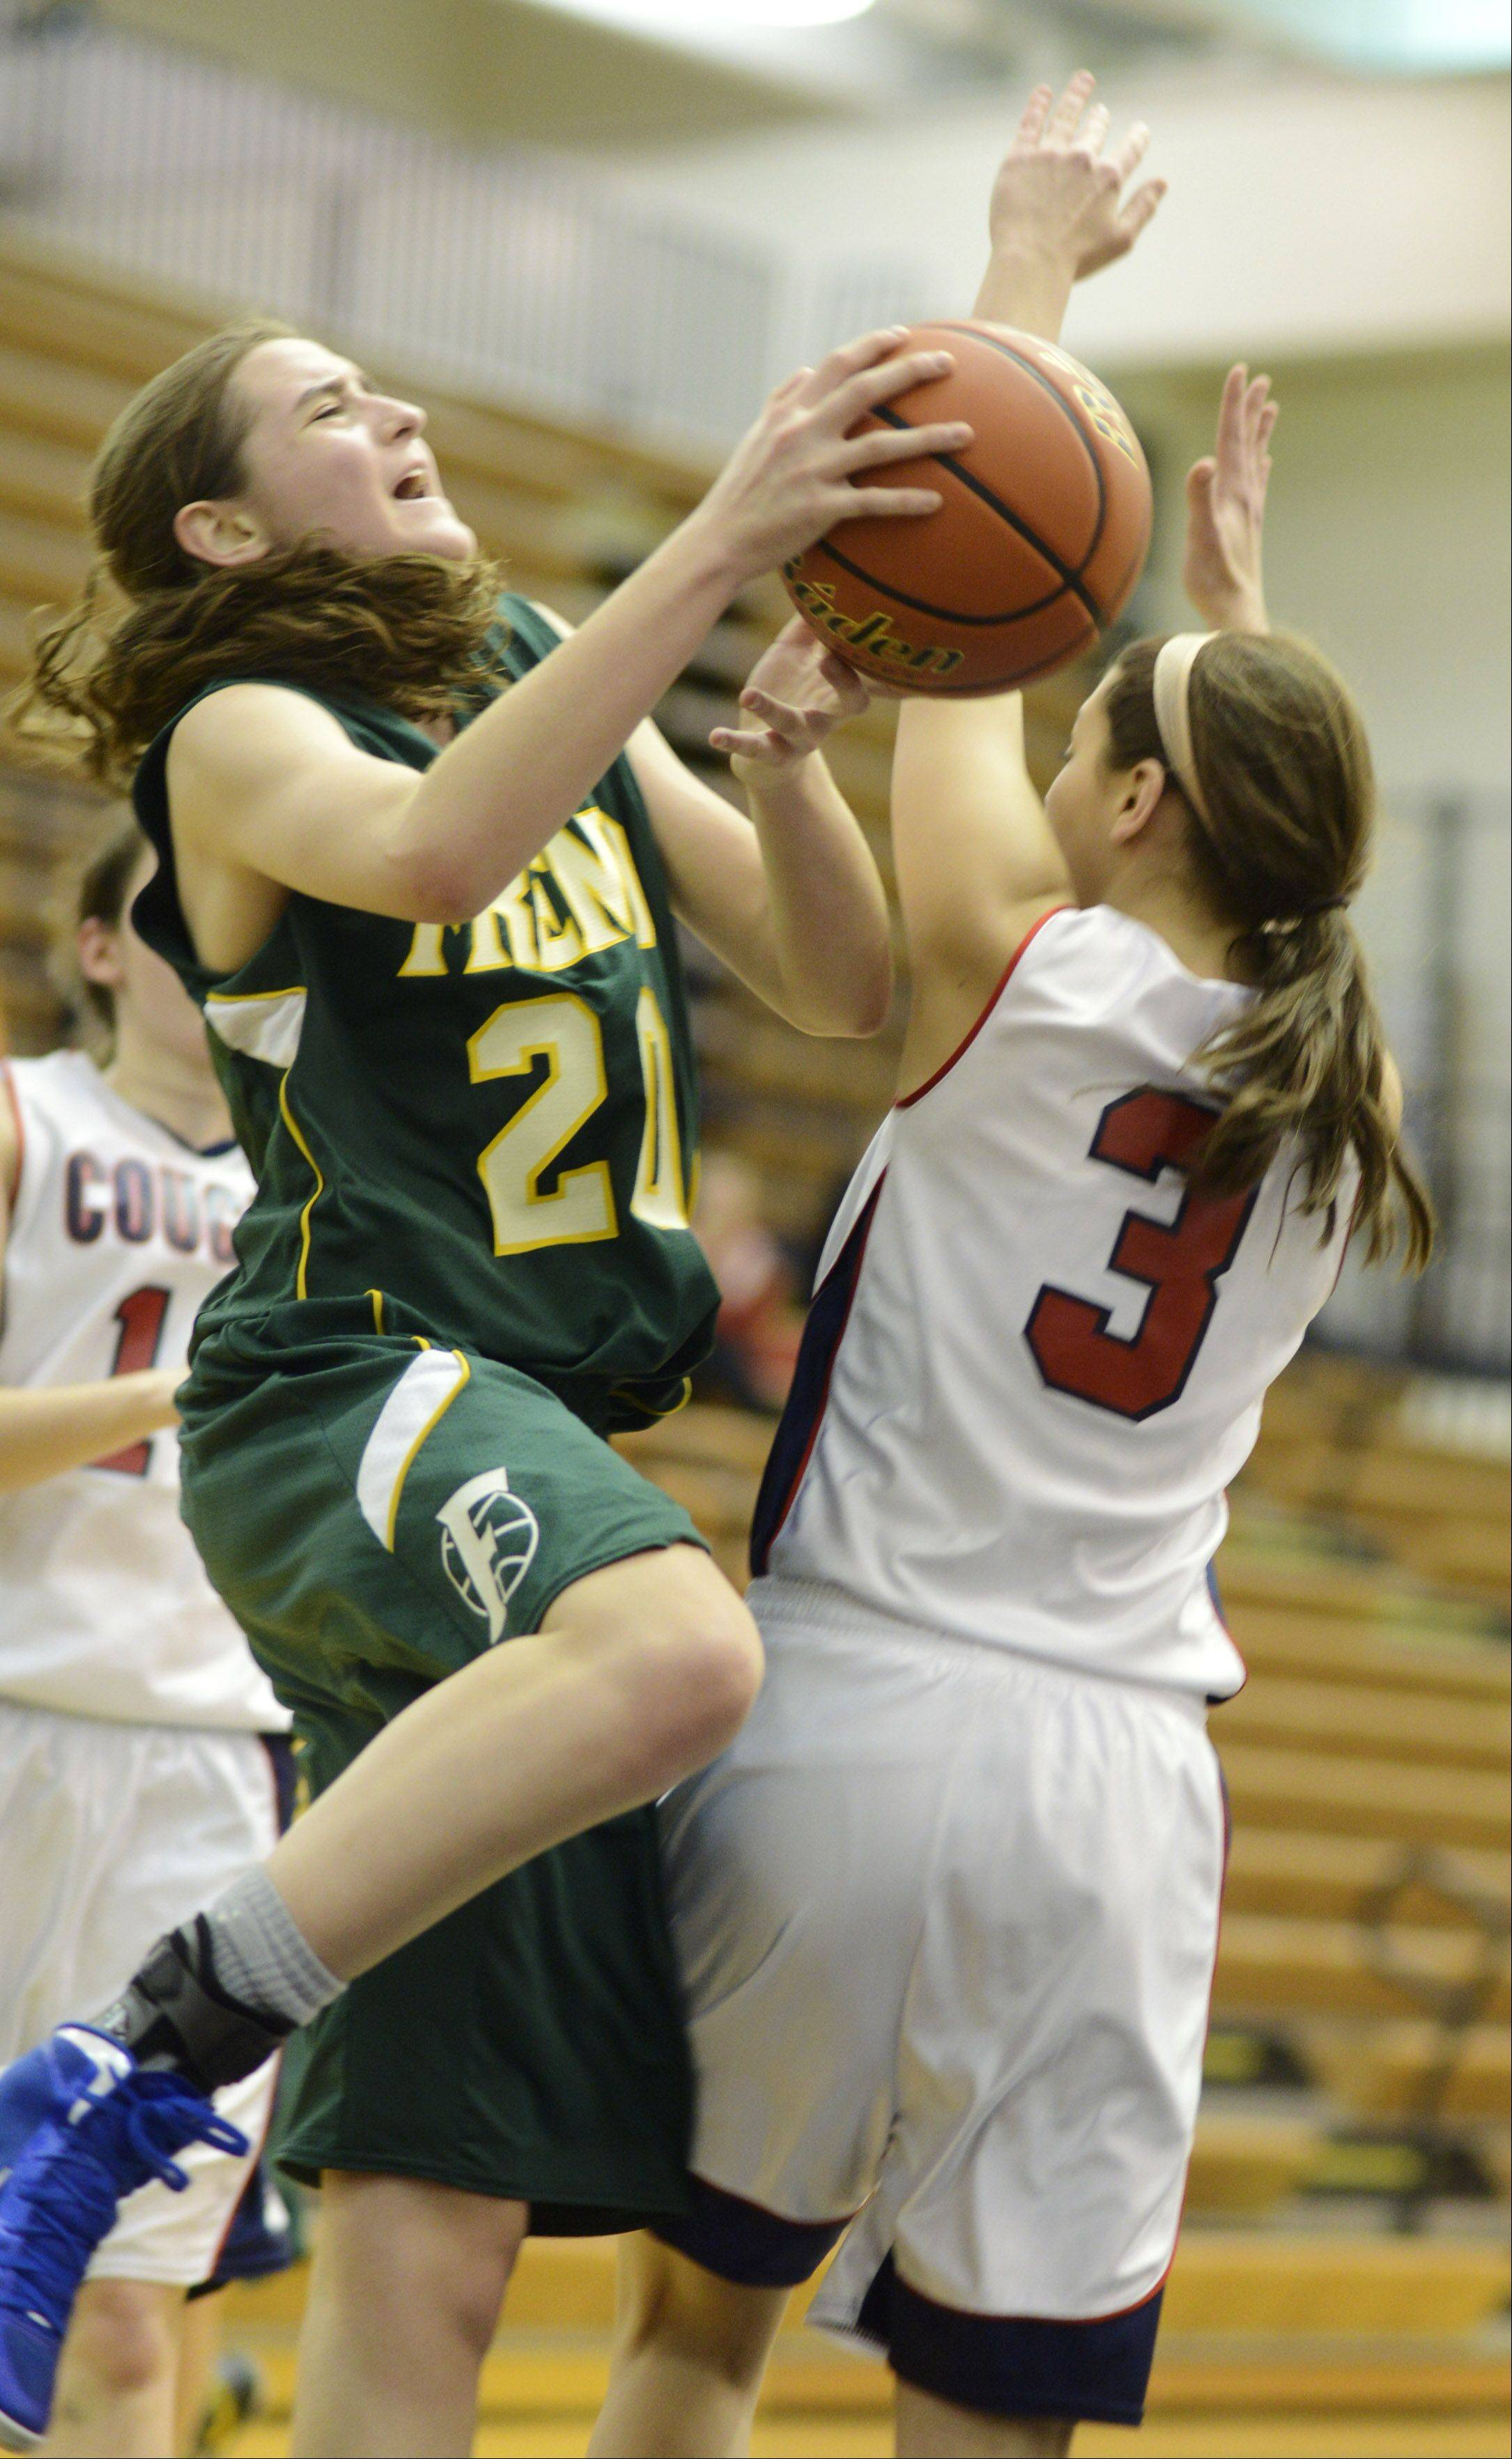 Fremd's Haley Gorecki, left, makes contact with Conant's DeeDee Durr.